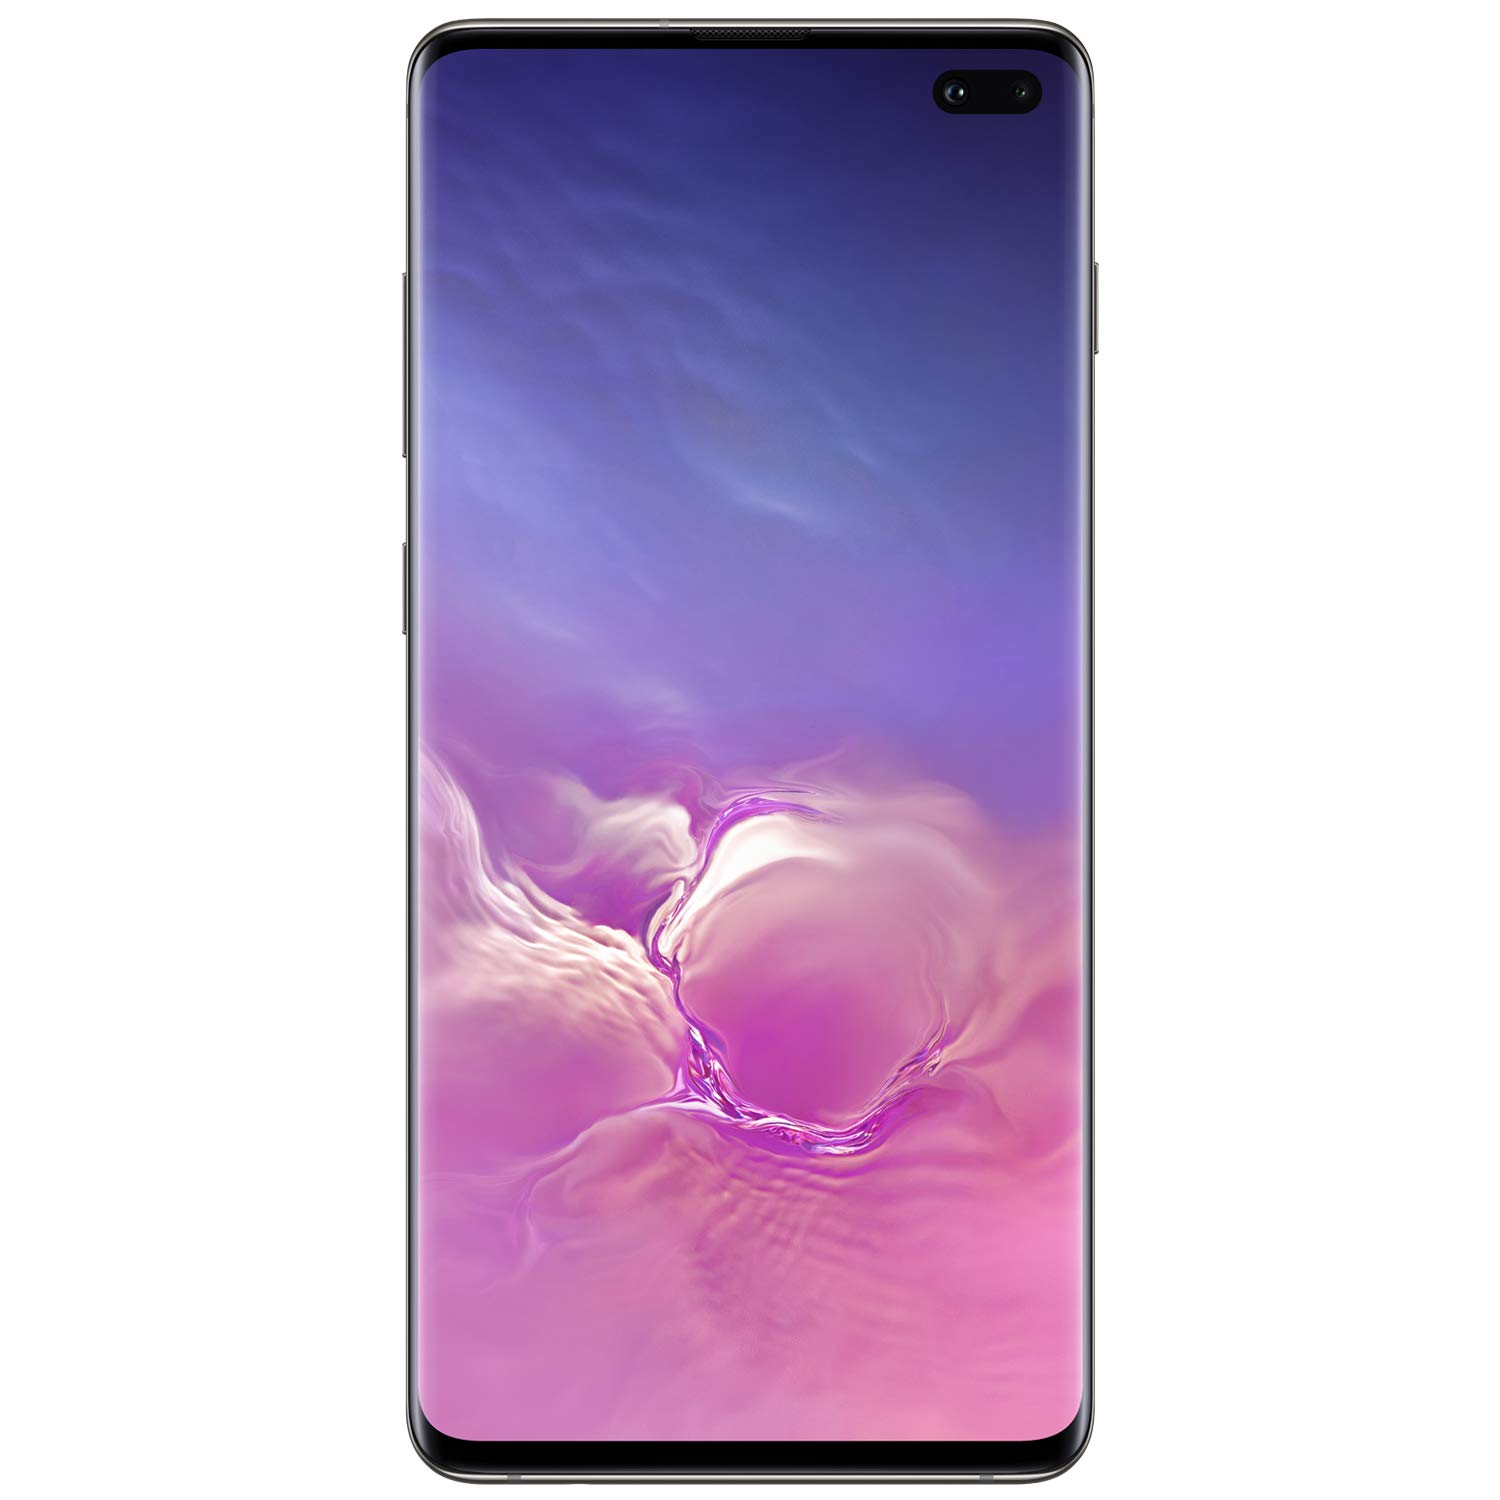 Samsung Galaxy S10+Factory Unlocked Android Cell Phone | US Version | 128GB of Storage | Fingerprint ID and Facial Recogn...